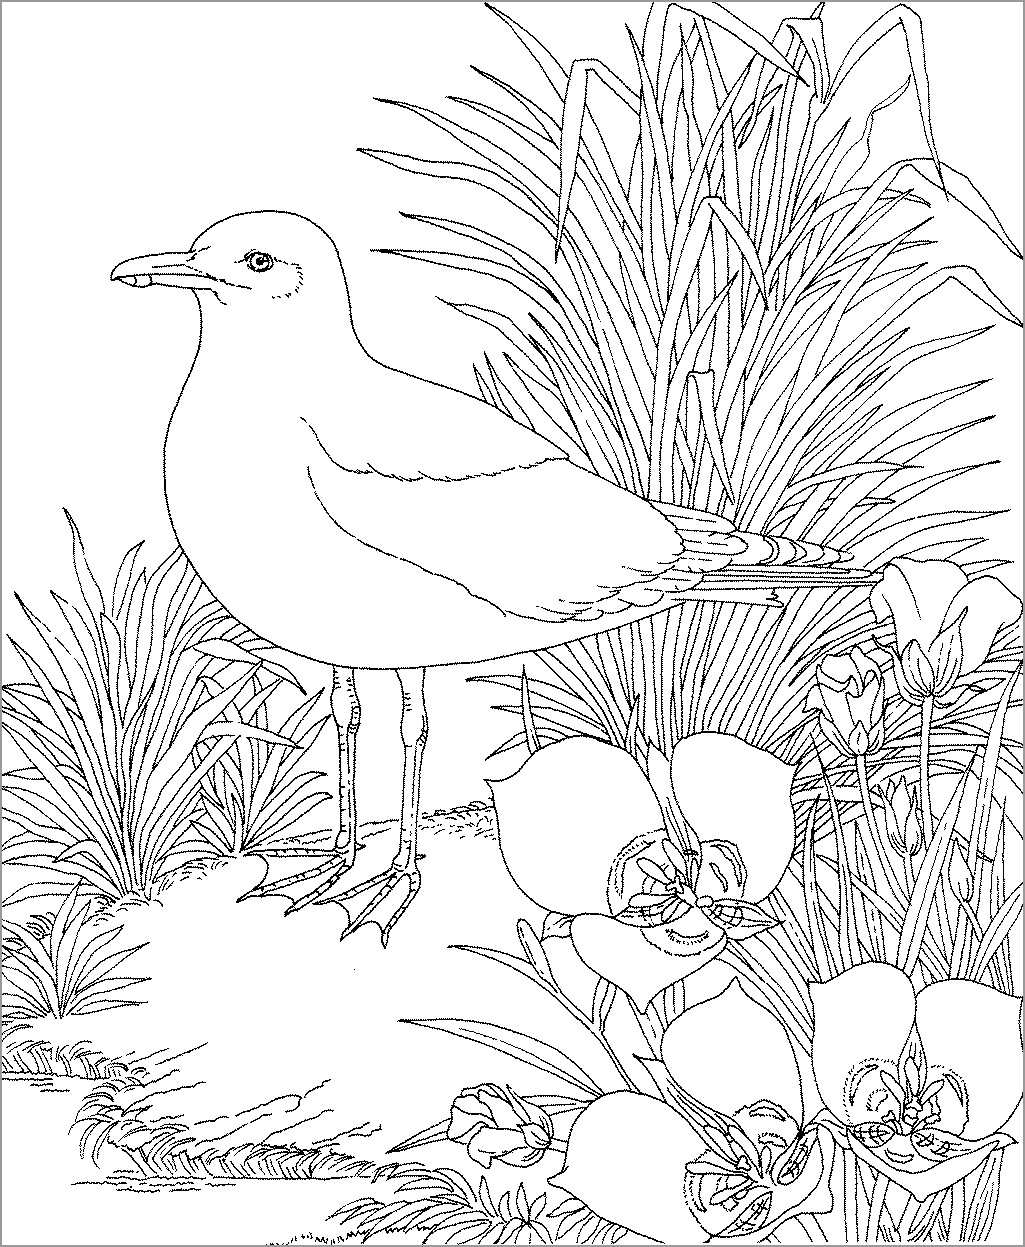 Seagull In The Foliage Coloring Page